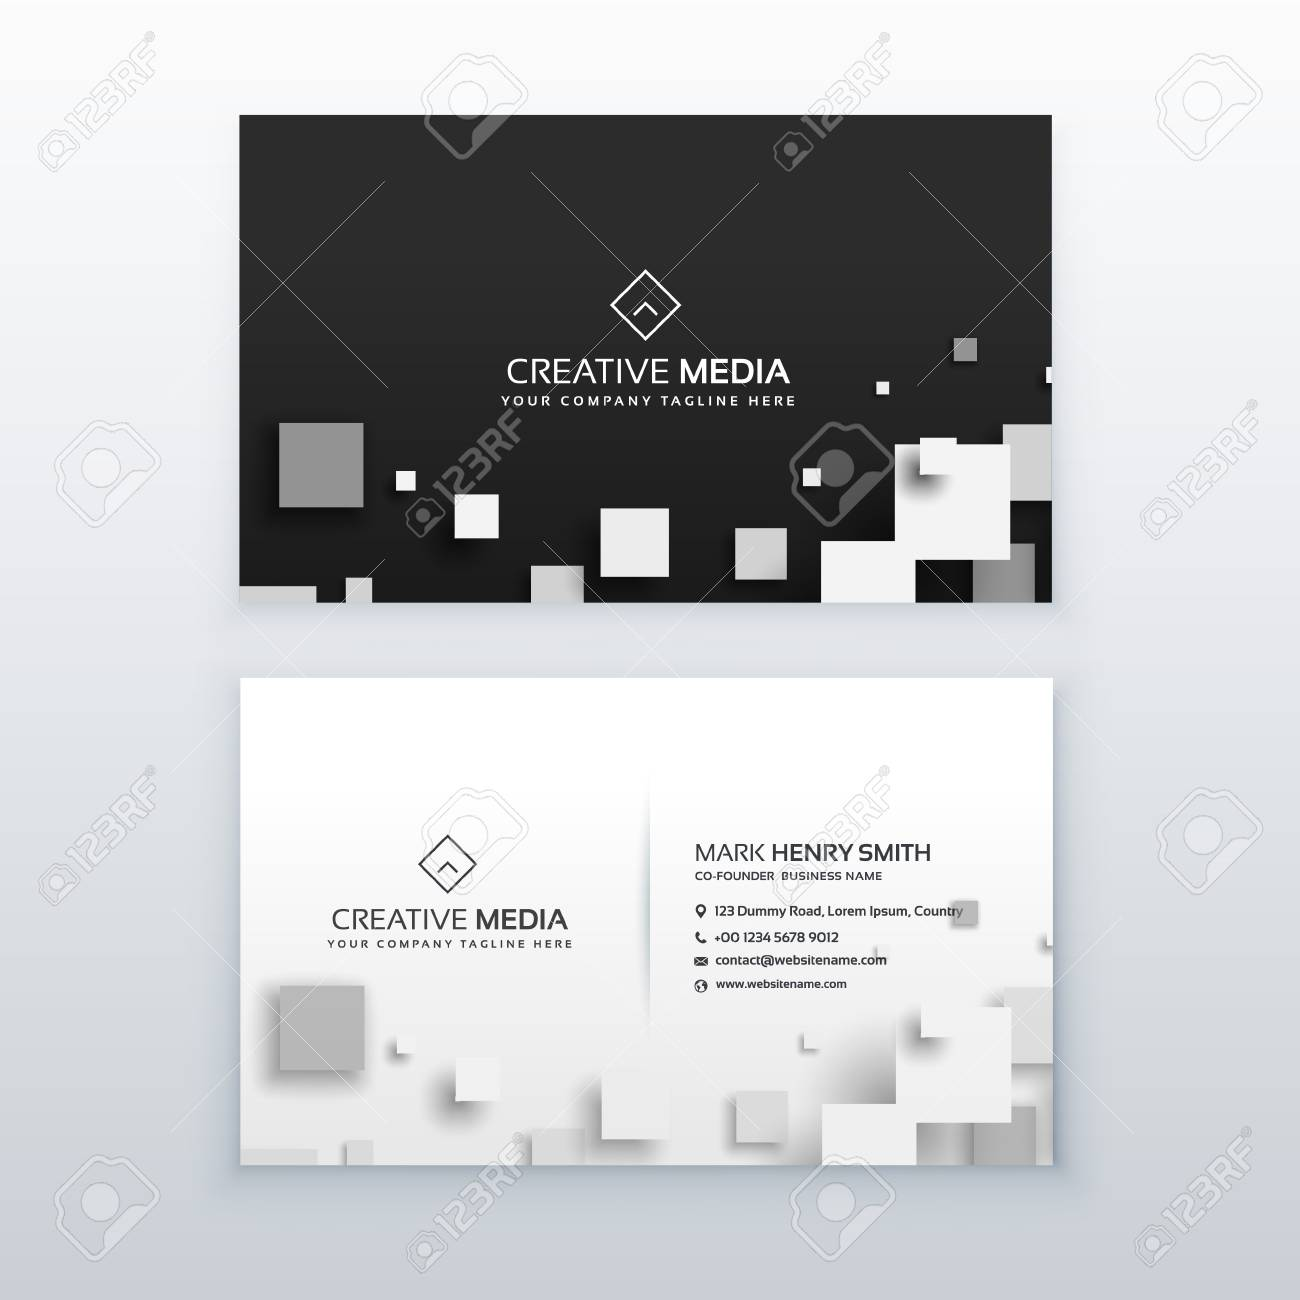 A vector 3d square business card design royalty free cliparts a vector 3d square business card design stock vector 84632494 colourmoves